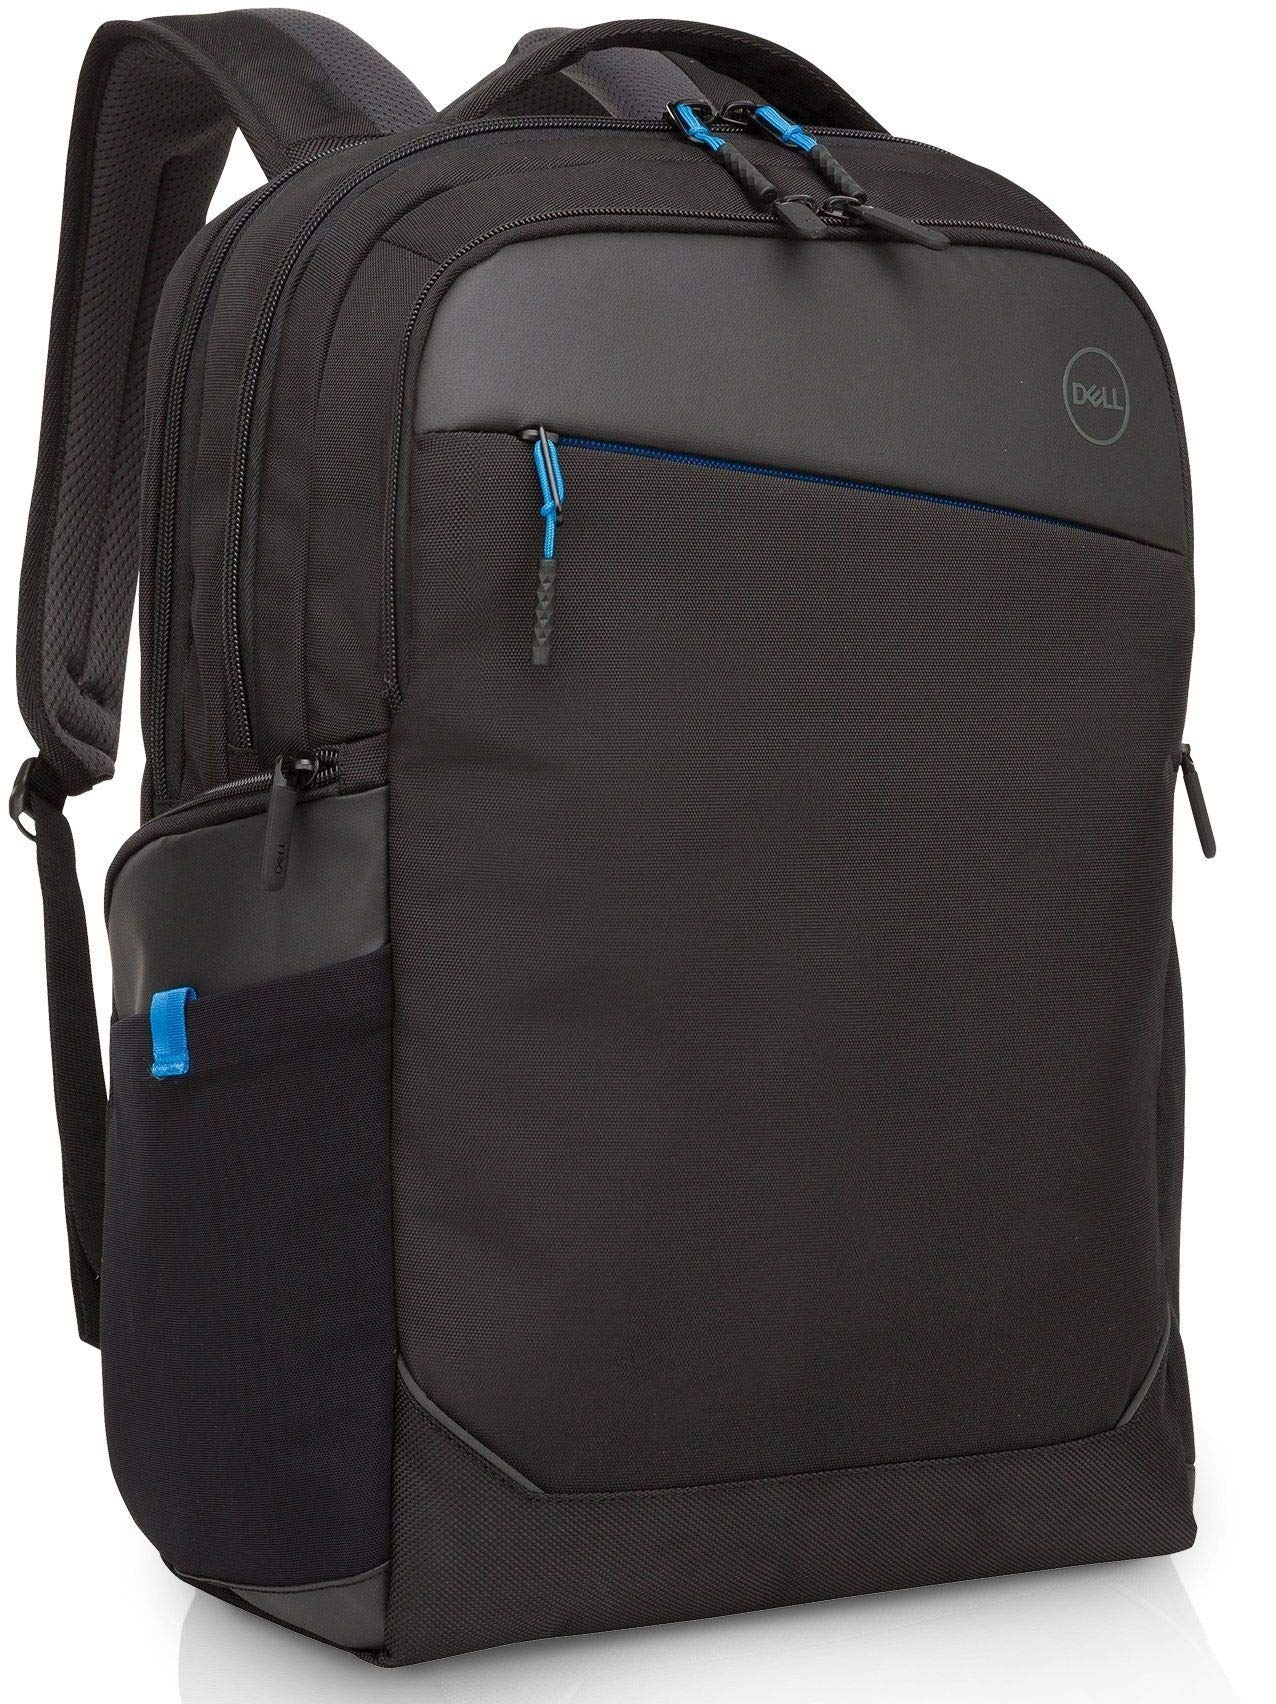 Dell 52CDX Professional Backpack 15'', Black by Dell